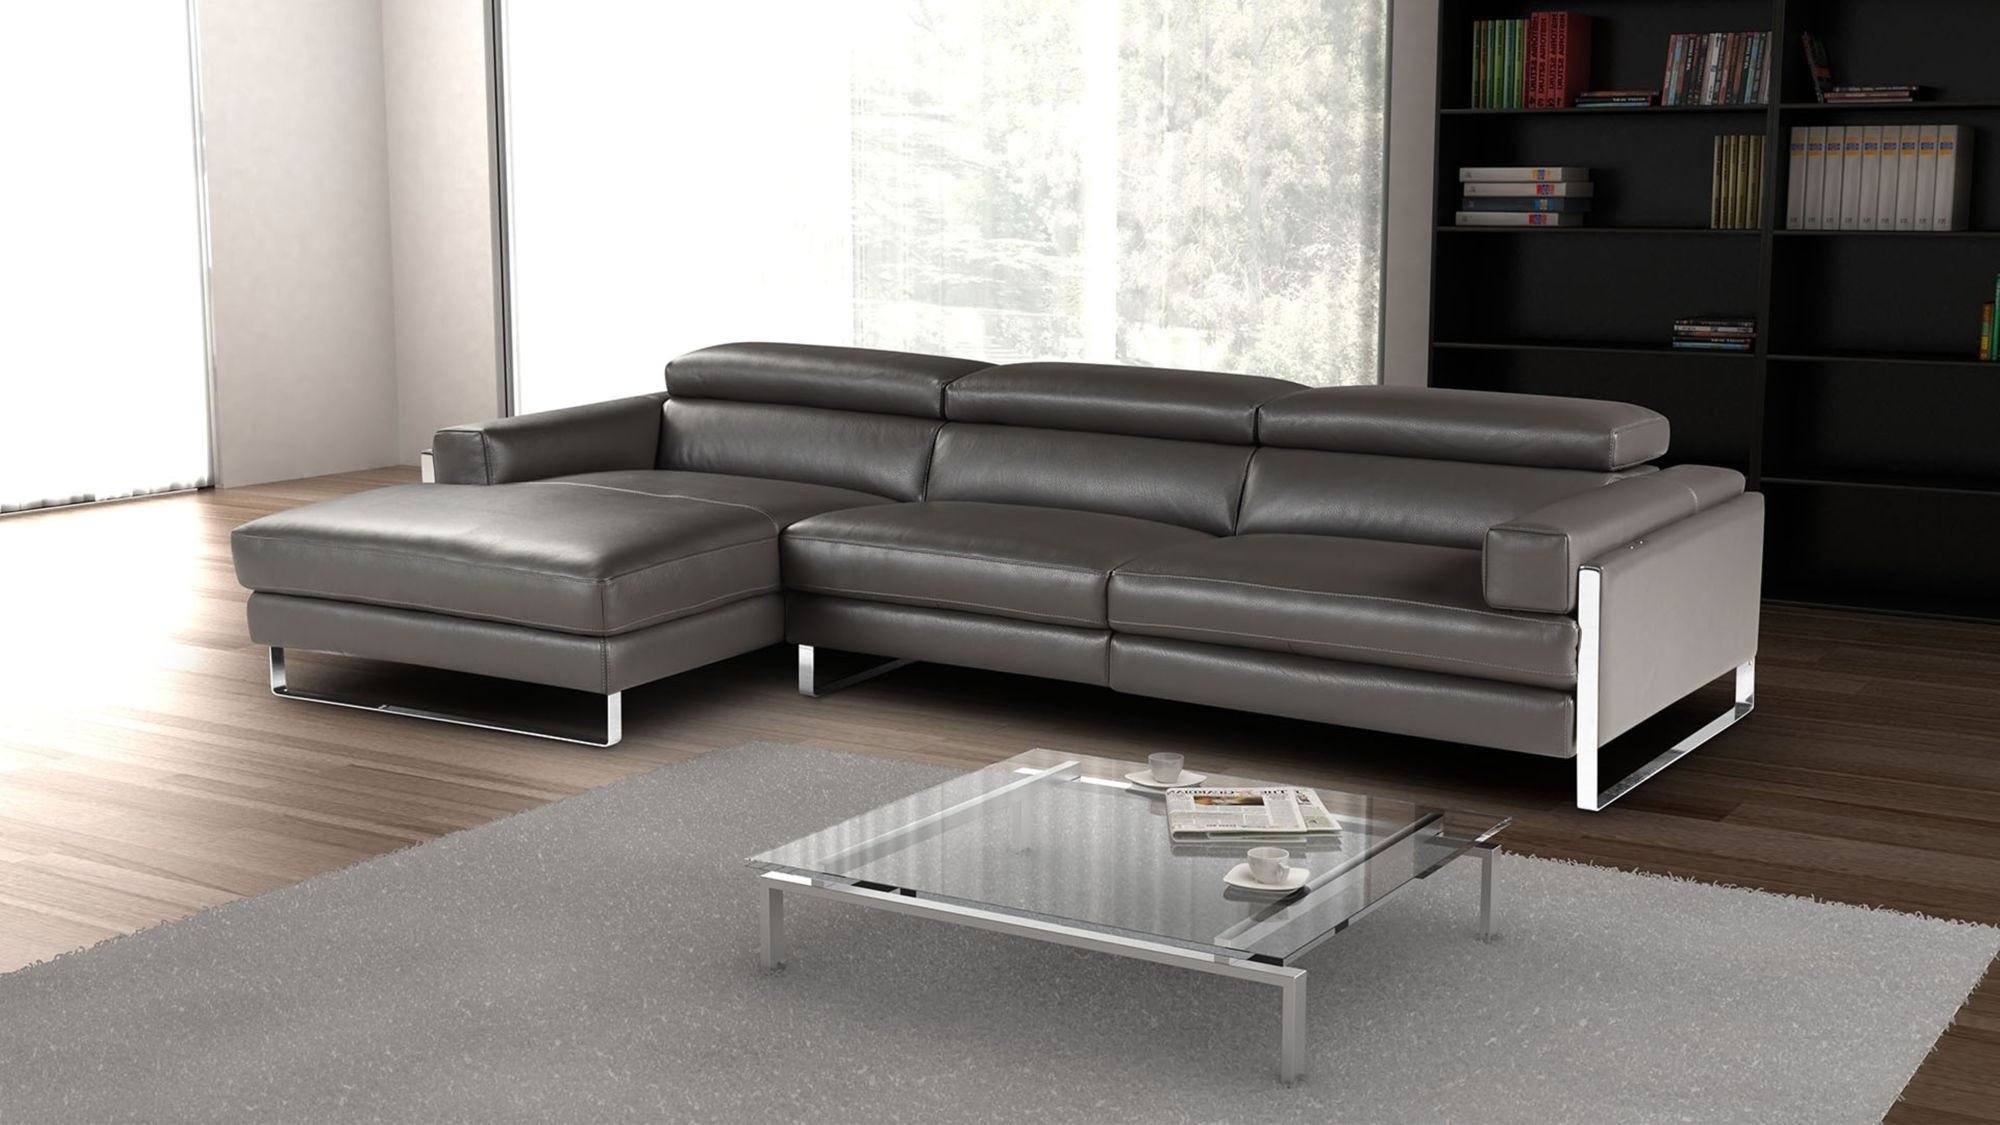 Famous Kellanght Sectional Sofa Angled Empress Arm Jackson Domino Piece Throughout Regina Sectional Sofas (View 10 of 15)